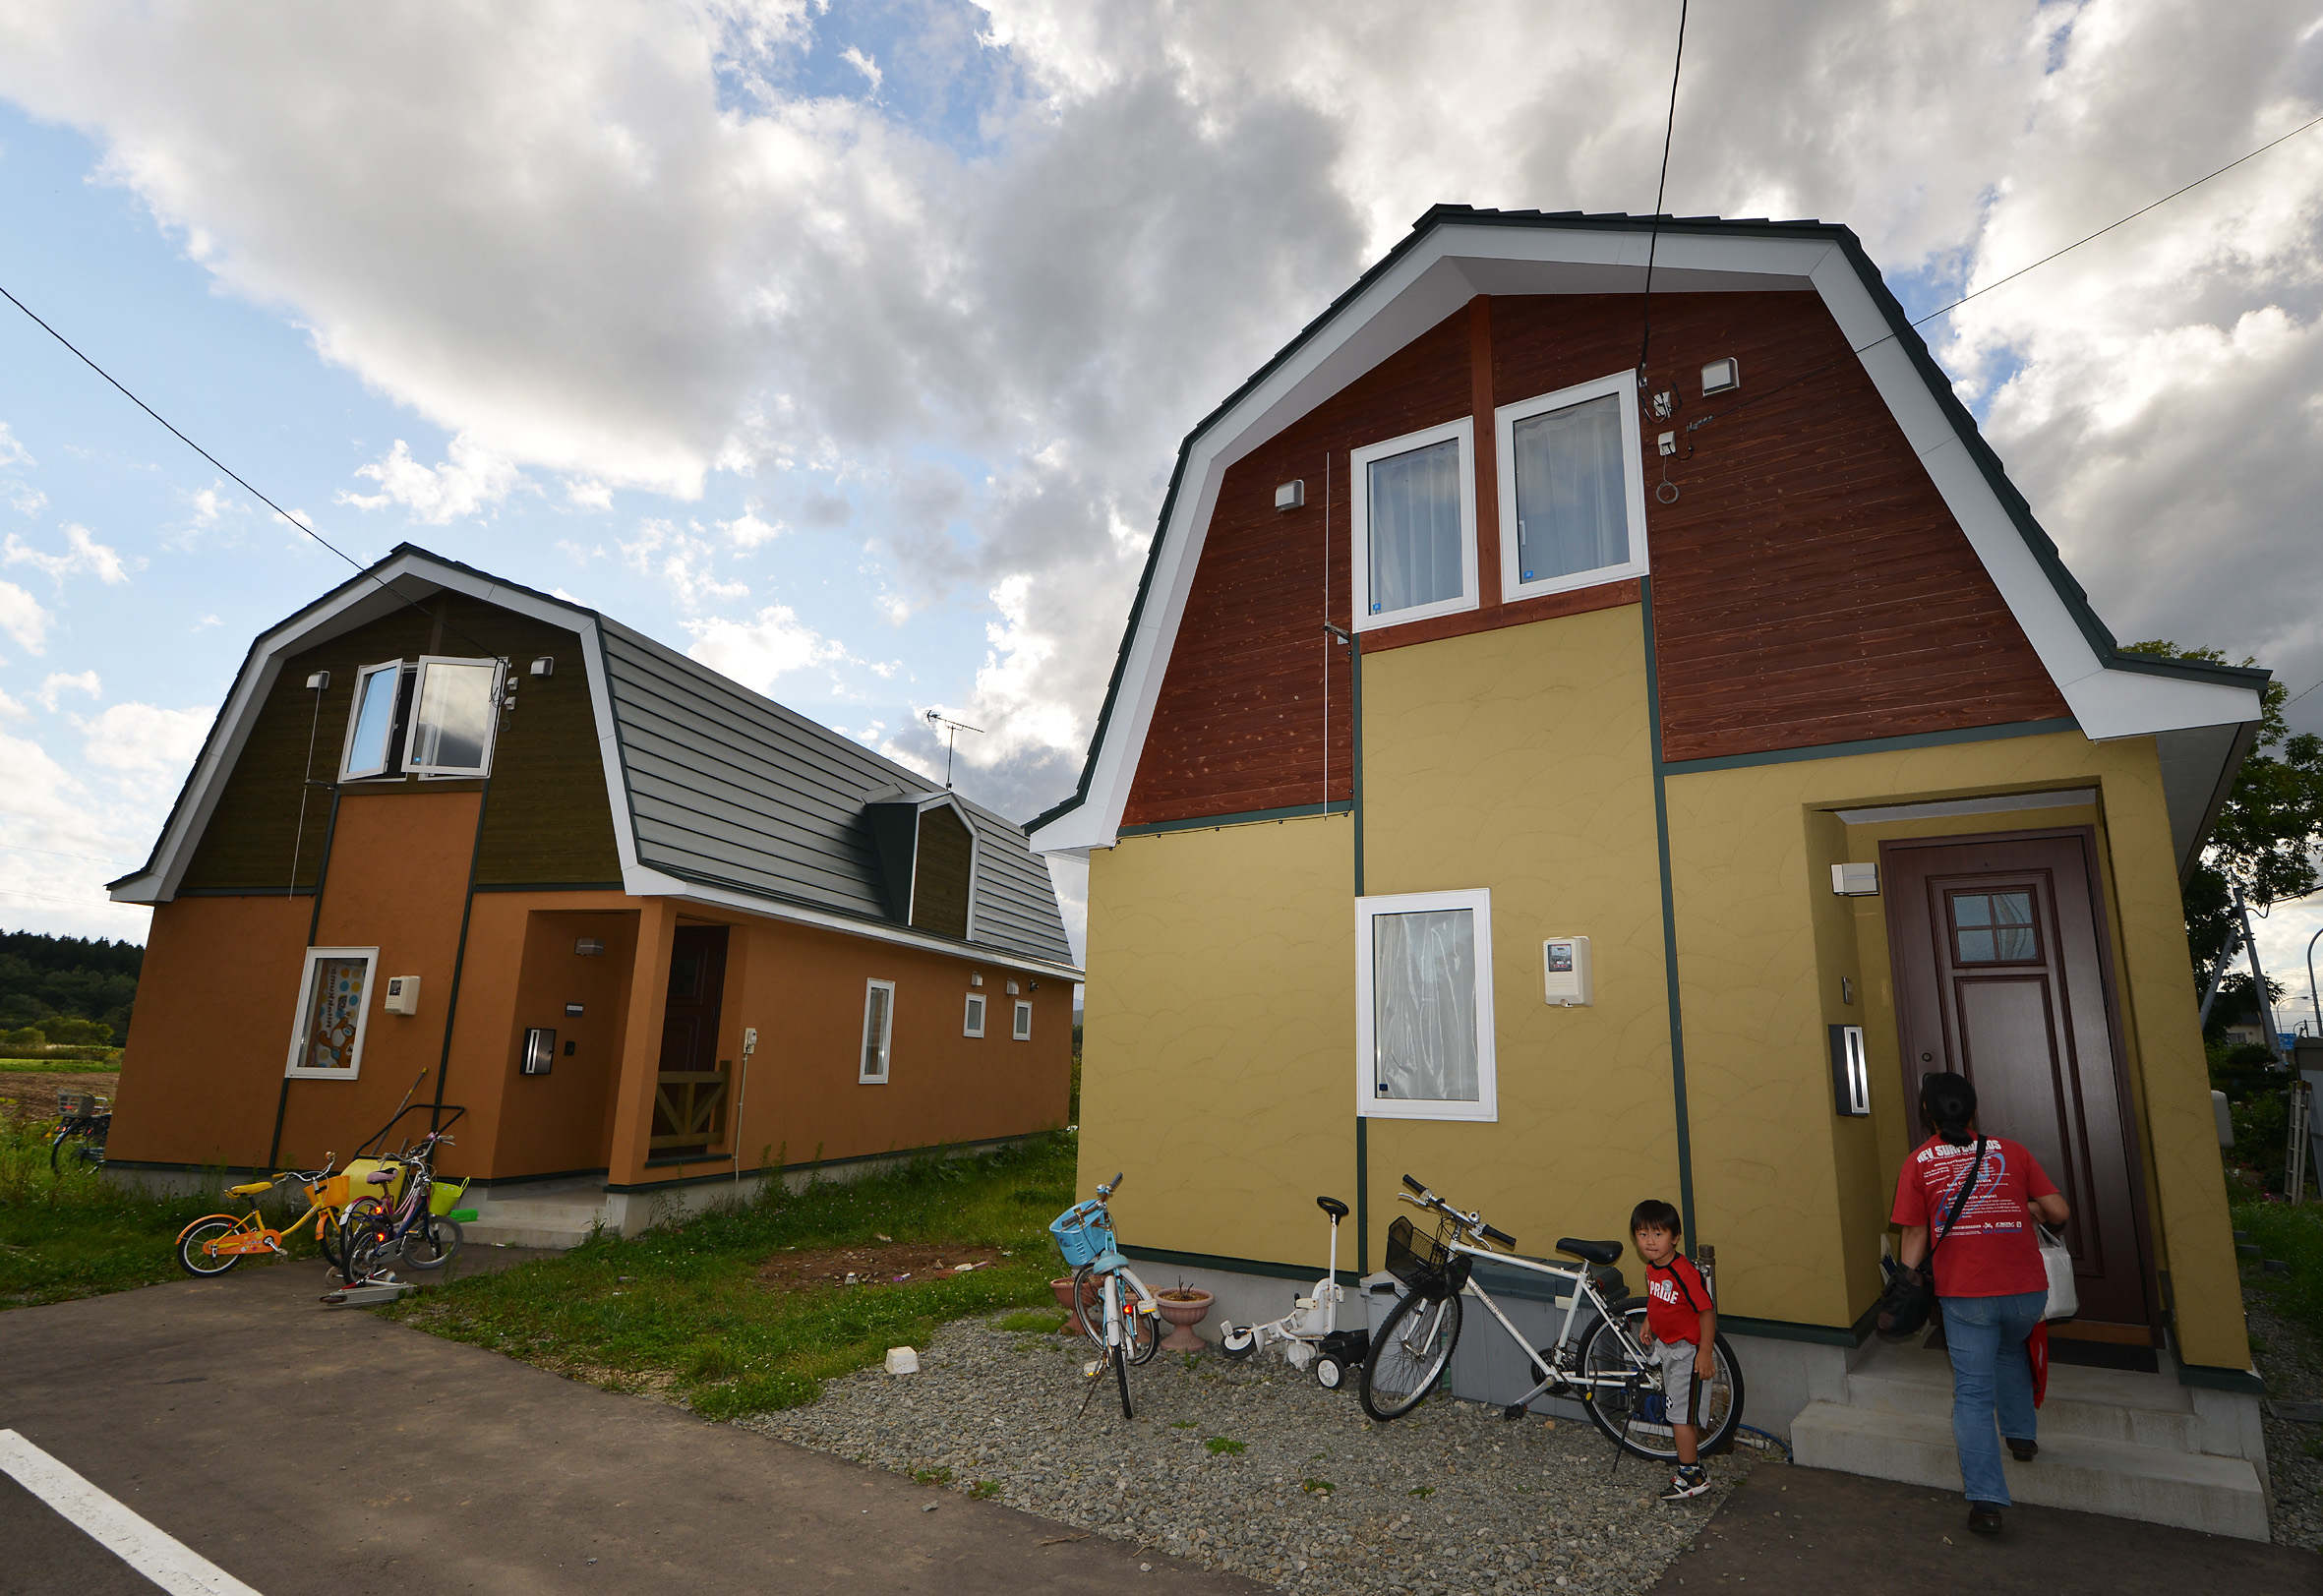 【news】 Cowshed Shaped Houses Add To The Scenic Beauty Of A